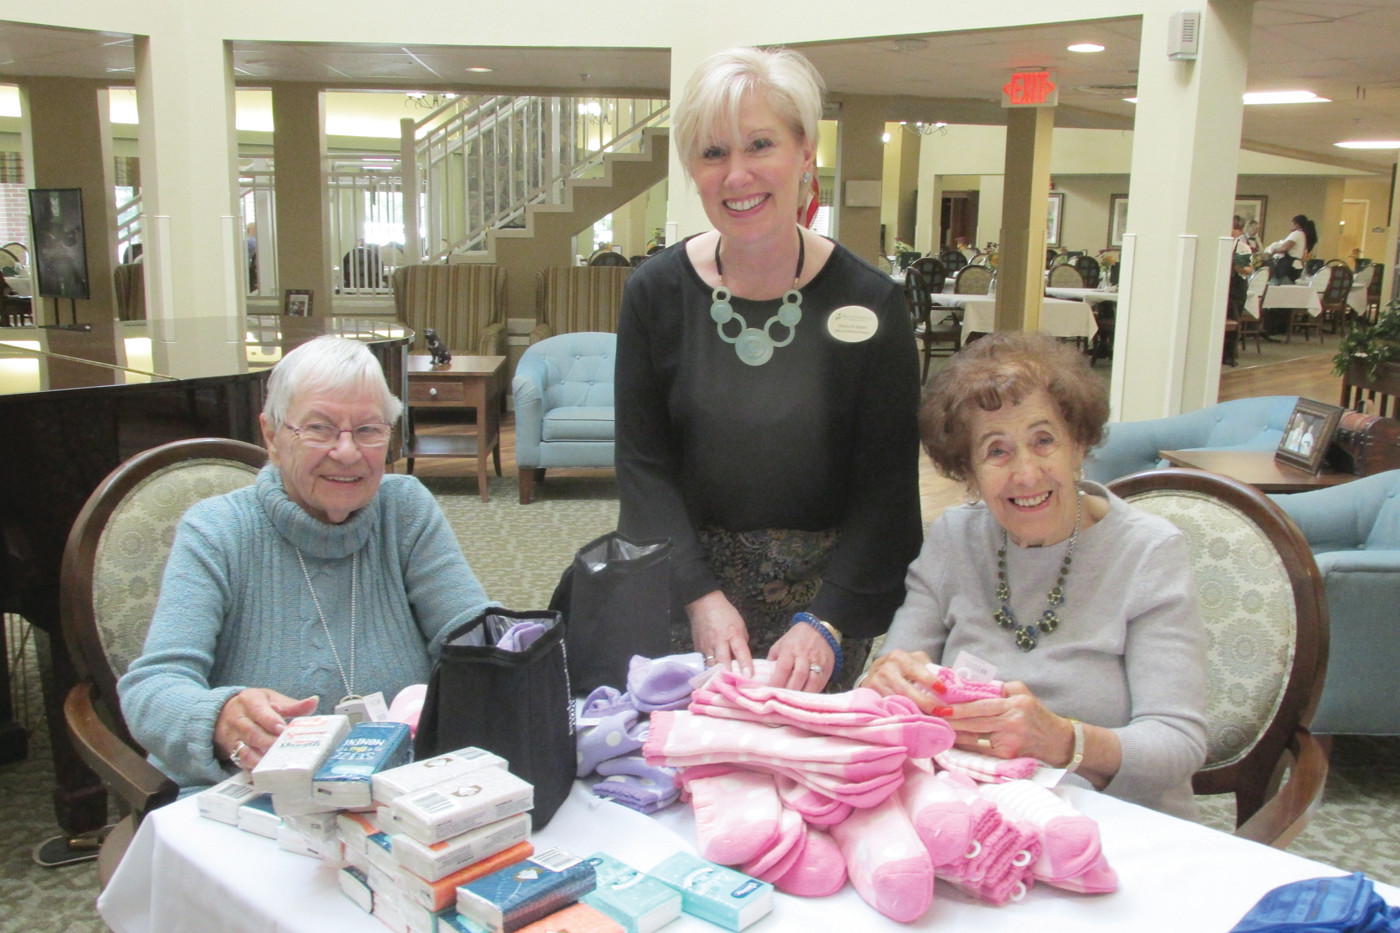 HELPING HANDS: Dawn St. James (center), Sales & Marketing Manager at Brookdale Pocasset Bay, is all smiles and joined by residents Maria Patonio and Rita Gariety during Tuesday's filling of the Blessing Bags.